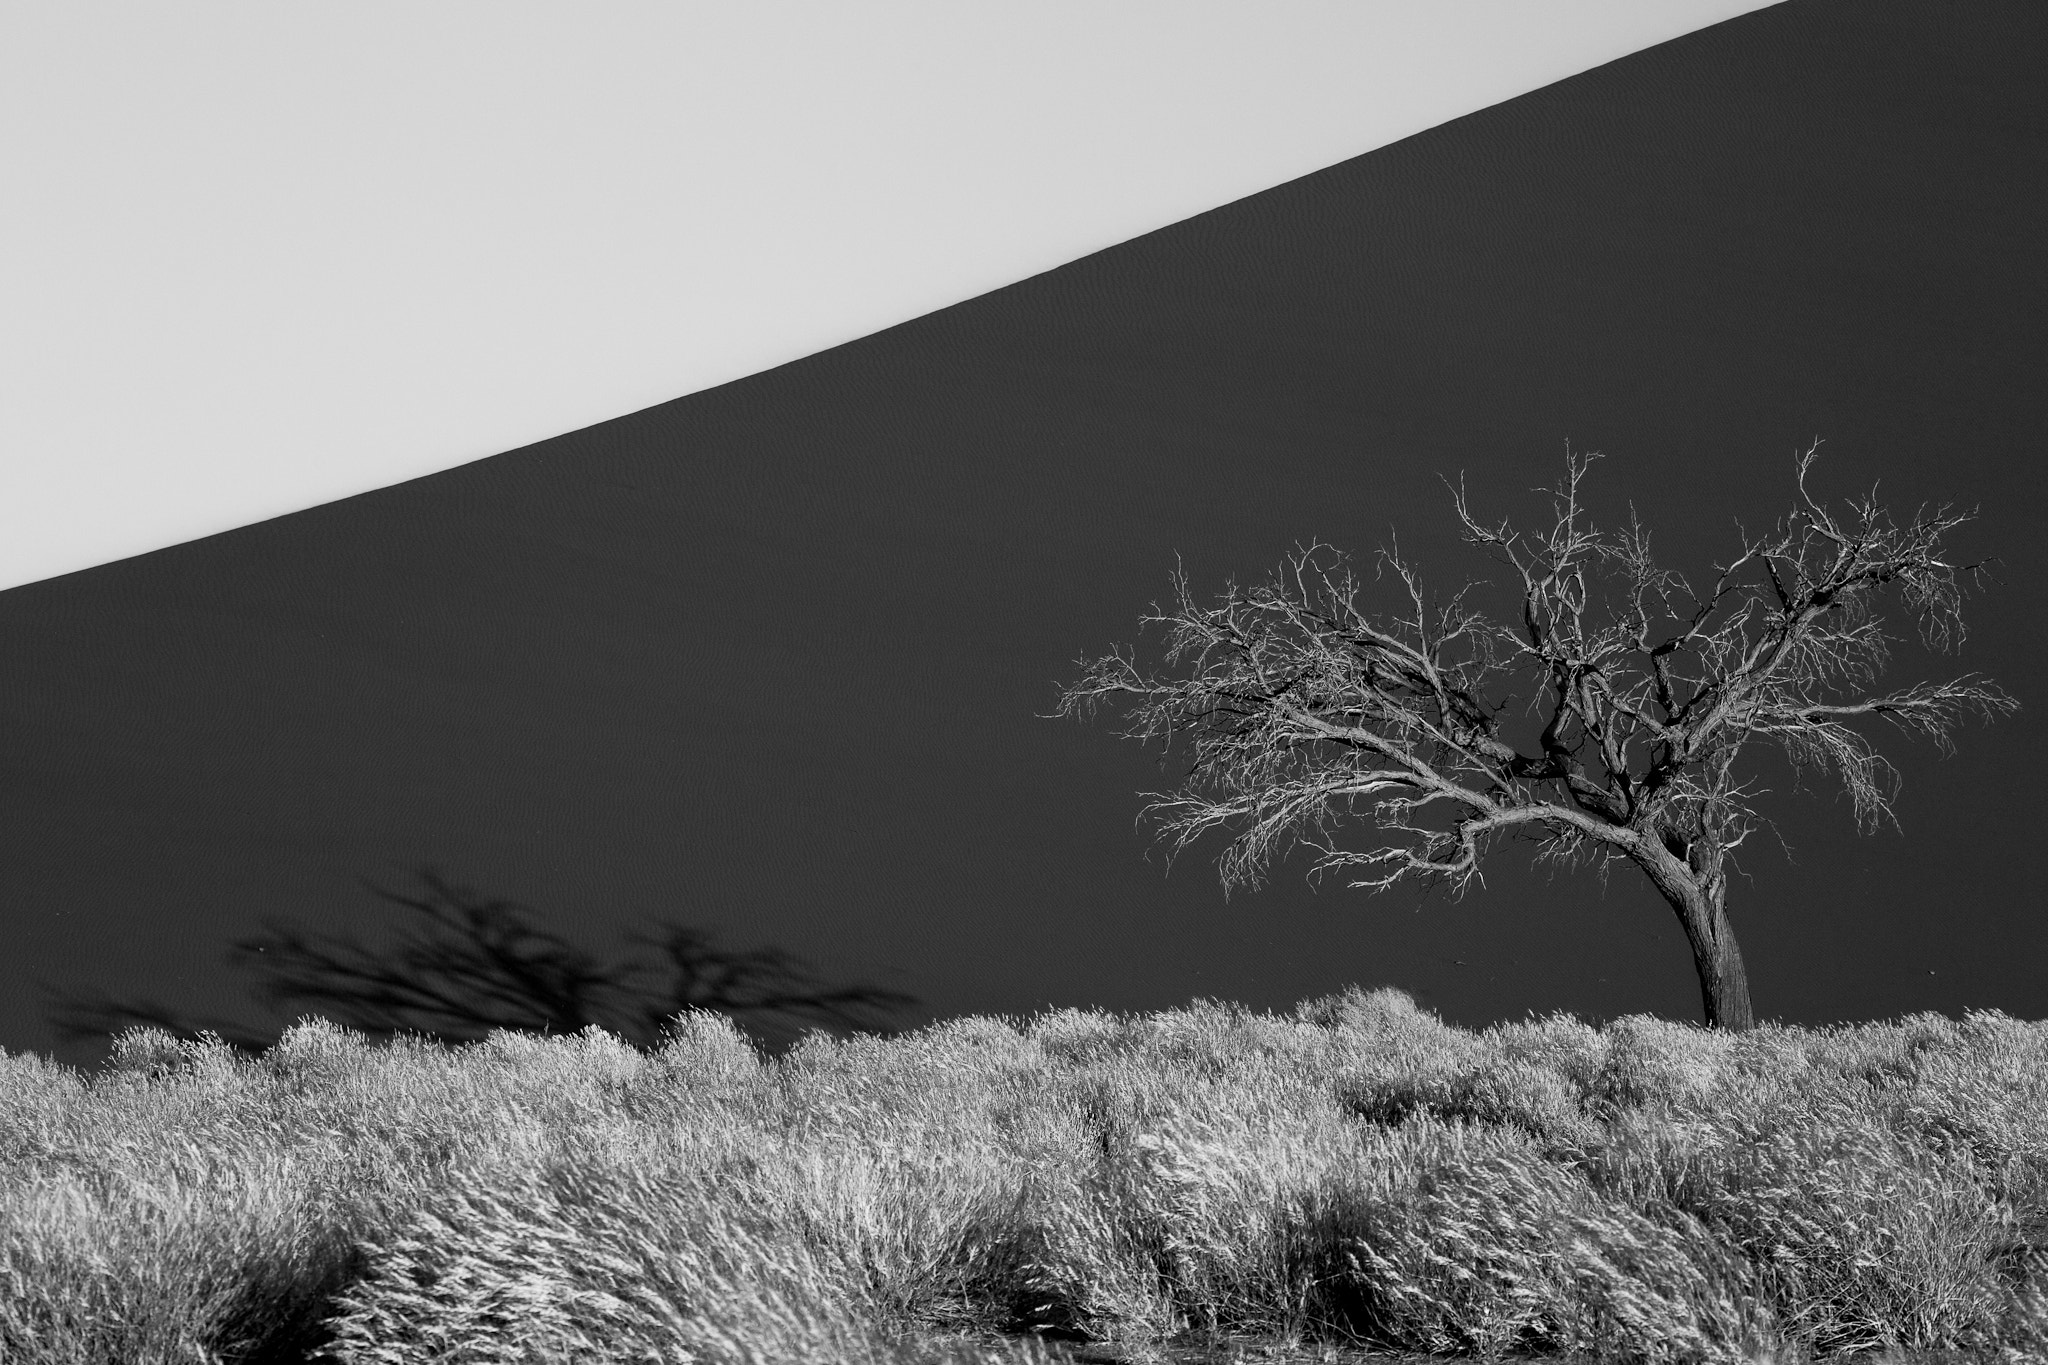 Photograph Dune, Tree & Grass by Dorothy Brodsky on 500px